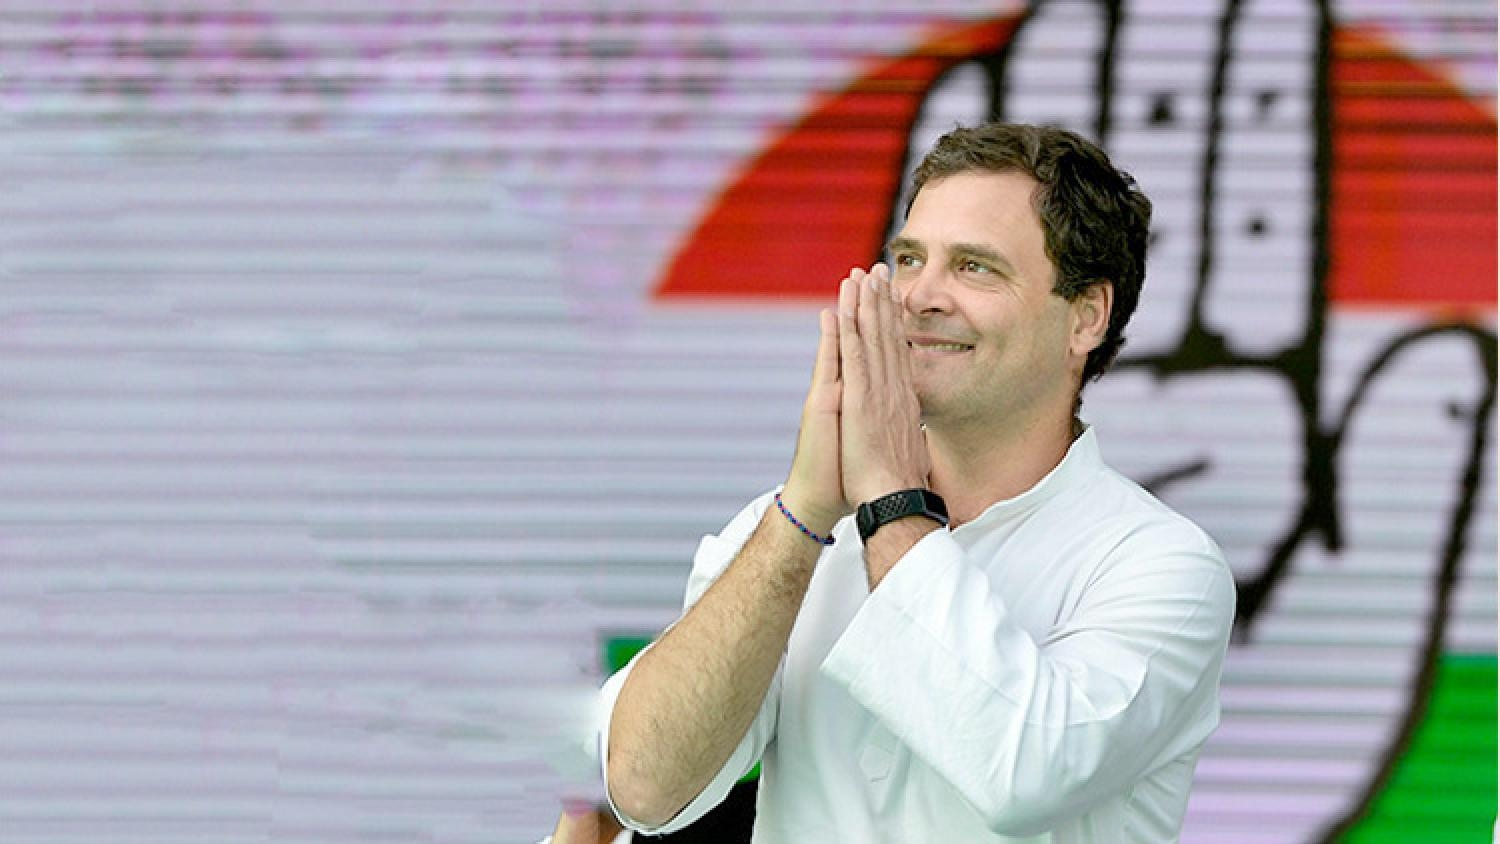 Twitter Reacts to Rahul Gandhi's Resignation as Congress President